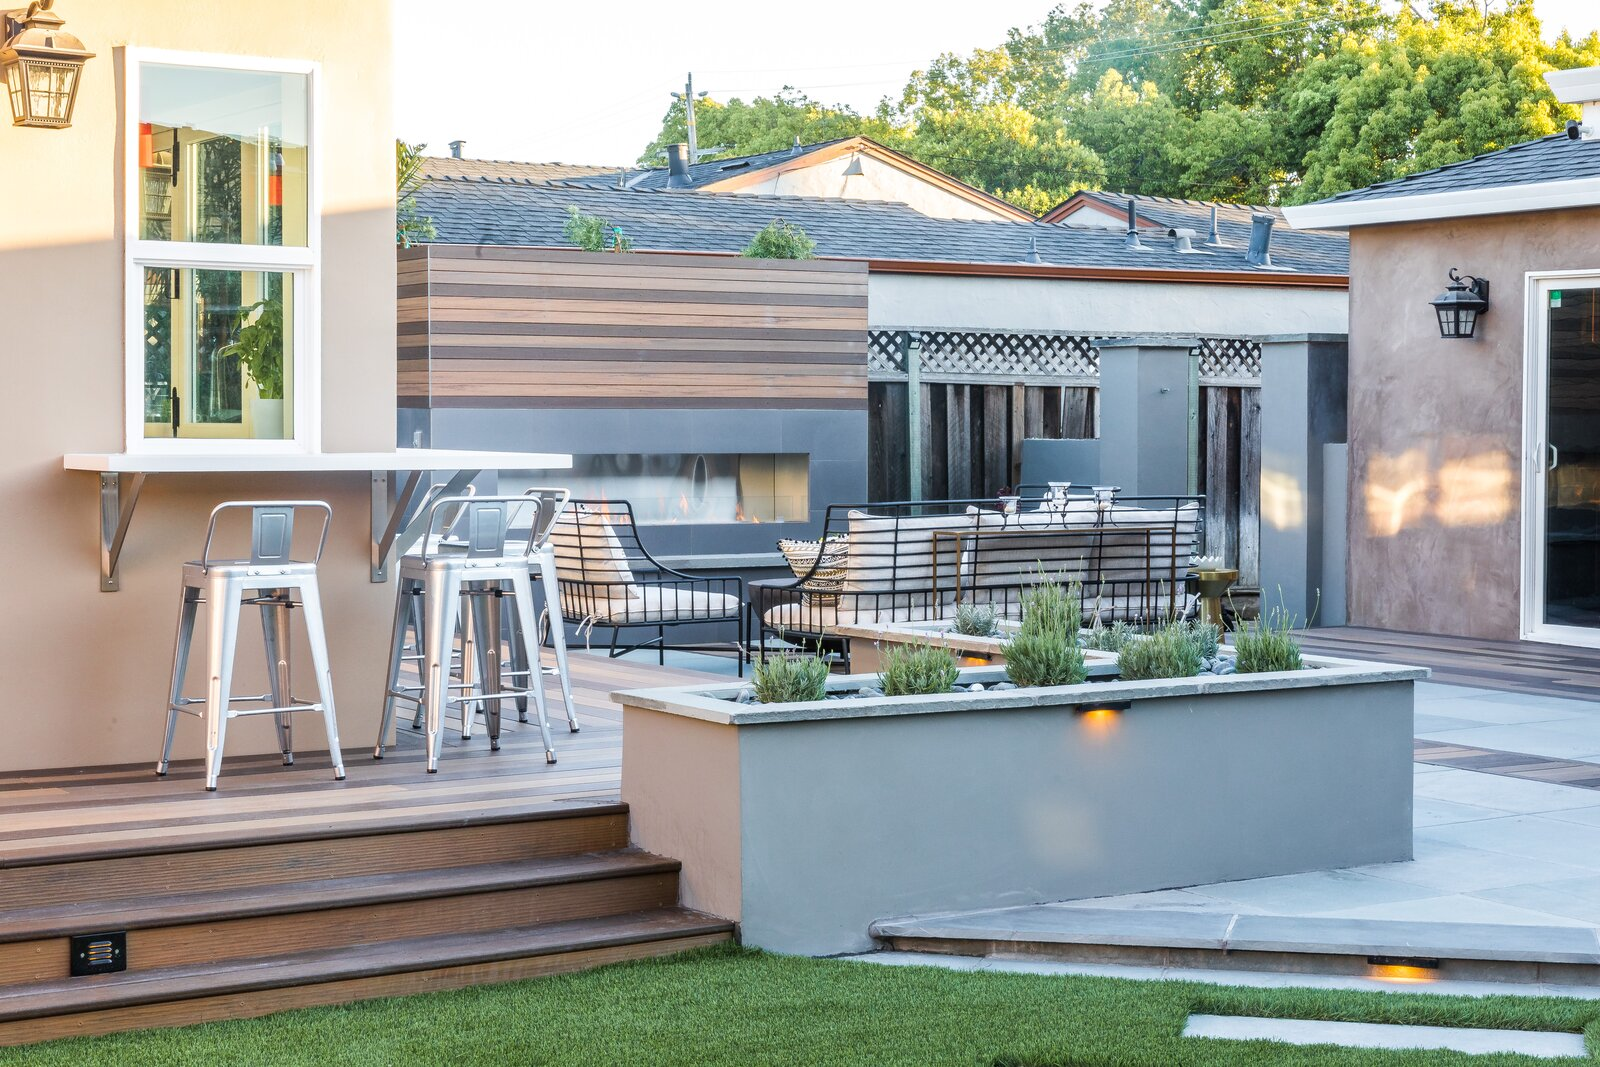 Outdoor, Large Patio, Porch, Deck, Back Yard, Shrubs, Raised Planters, Decking Patio, Porch, Deck, Stone Patio, Porch, Deck, Grass, Hardscapes, and Trees The technology behind TimberTech's products recreates the look of real wood, with various steps to produce the variation found in natural products as well.  Photo 6 of 8 in From Trash to Treasure, You Can Build a Deck That's Easy on Both the Eyes and the Environment